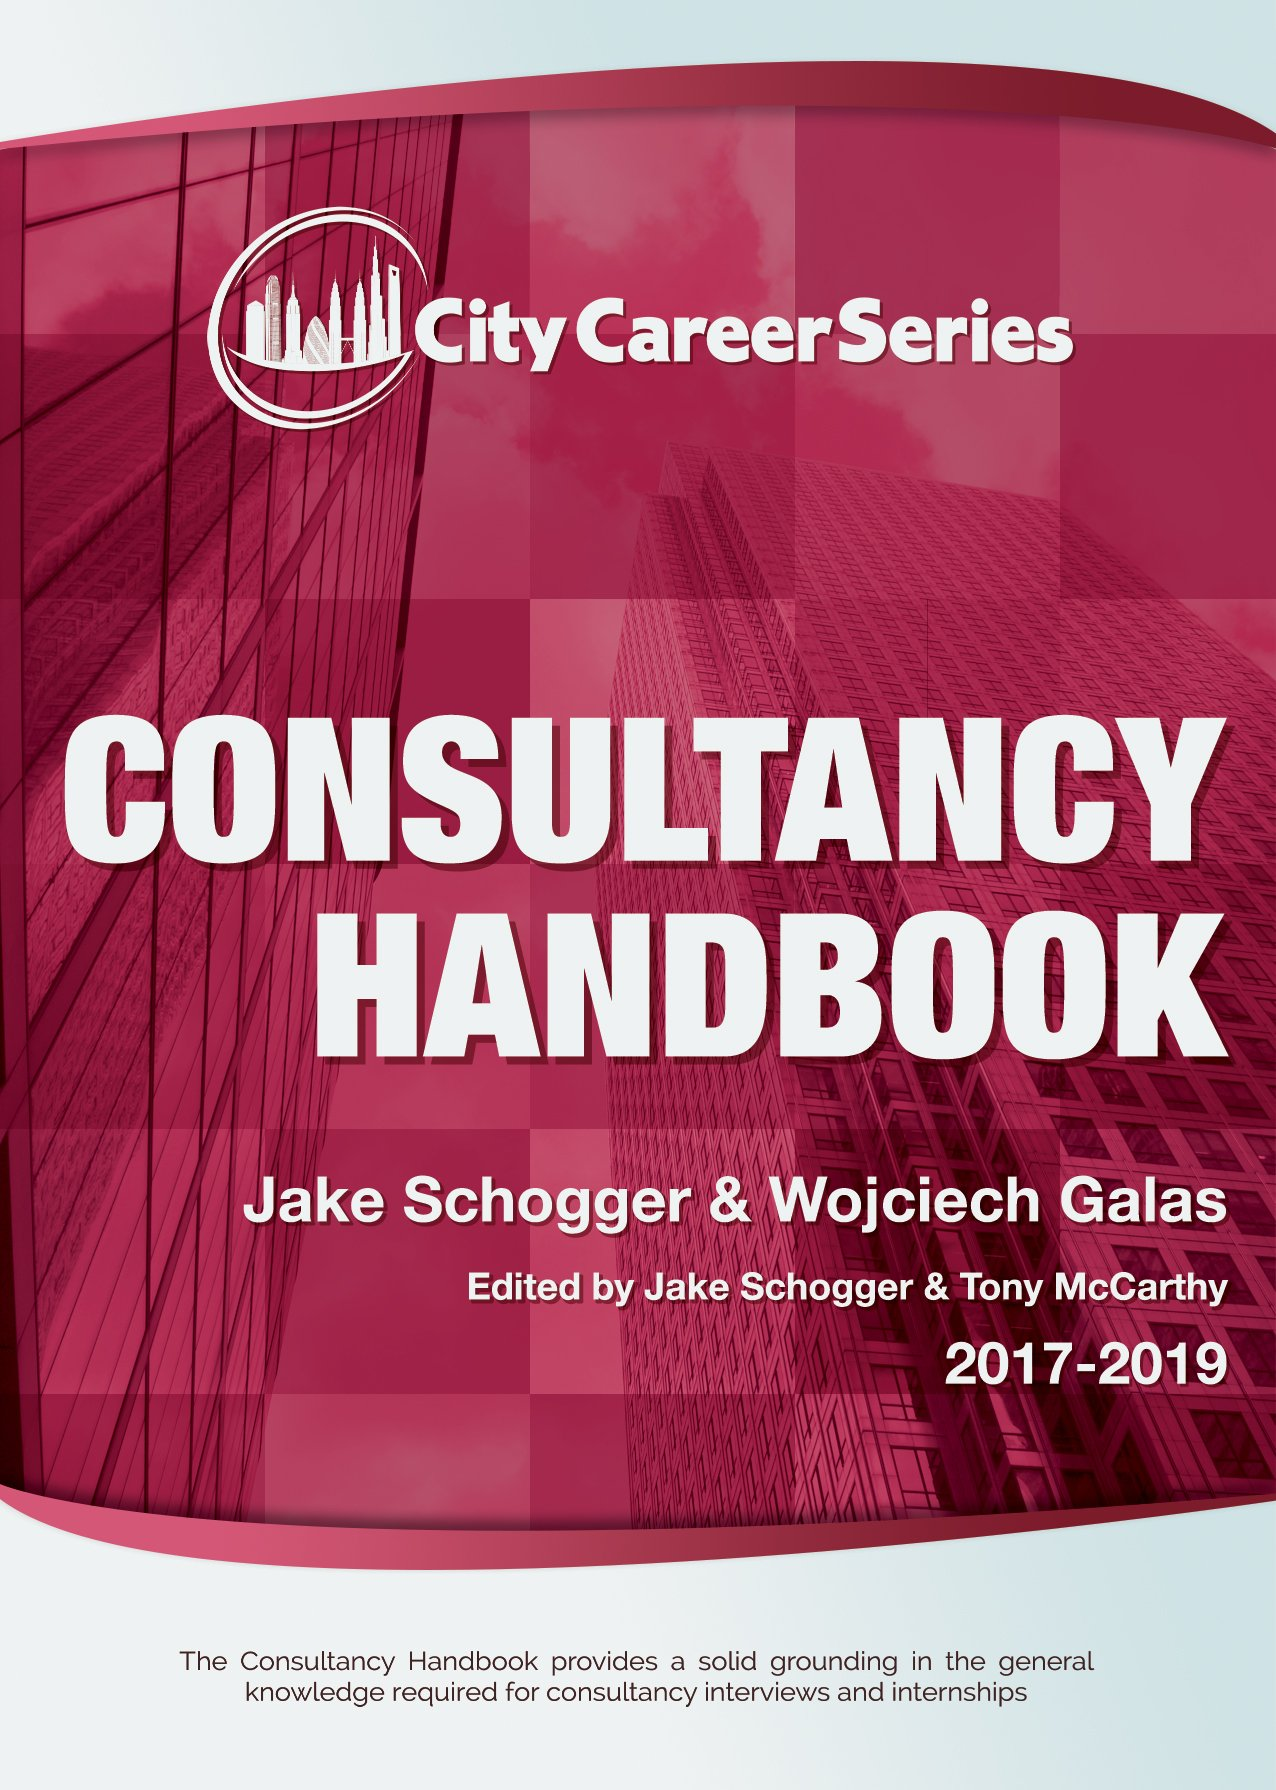 Consultancy Handbook - 2017: Amazon.co.uk: Jake Schogger, Wojciech Galas:  9780993436413: Books